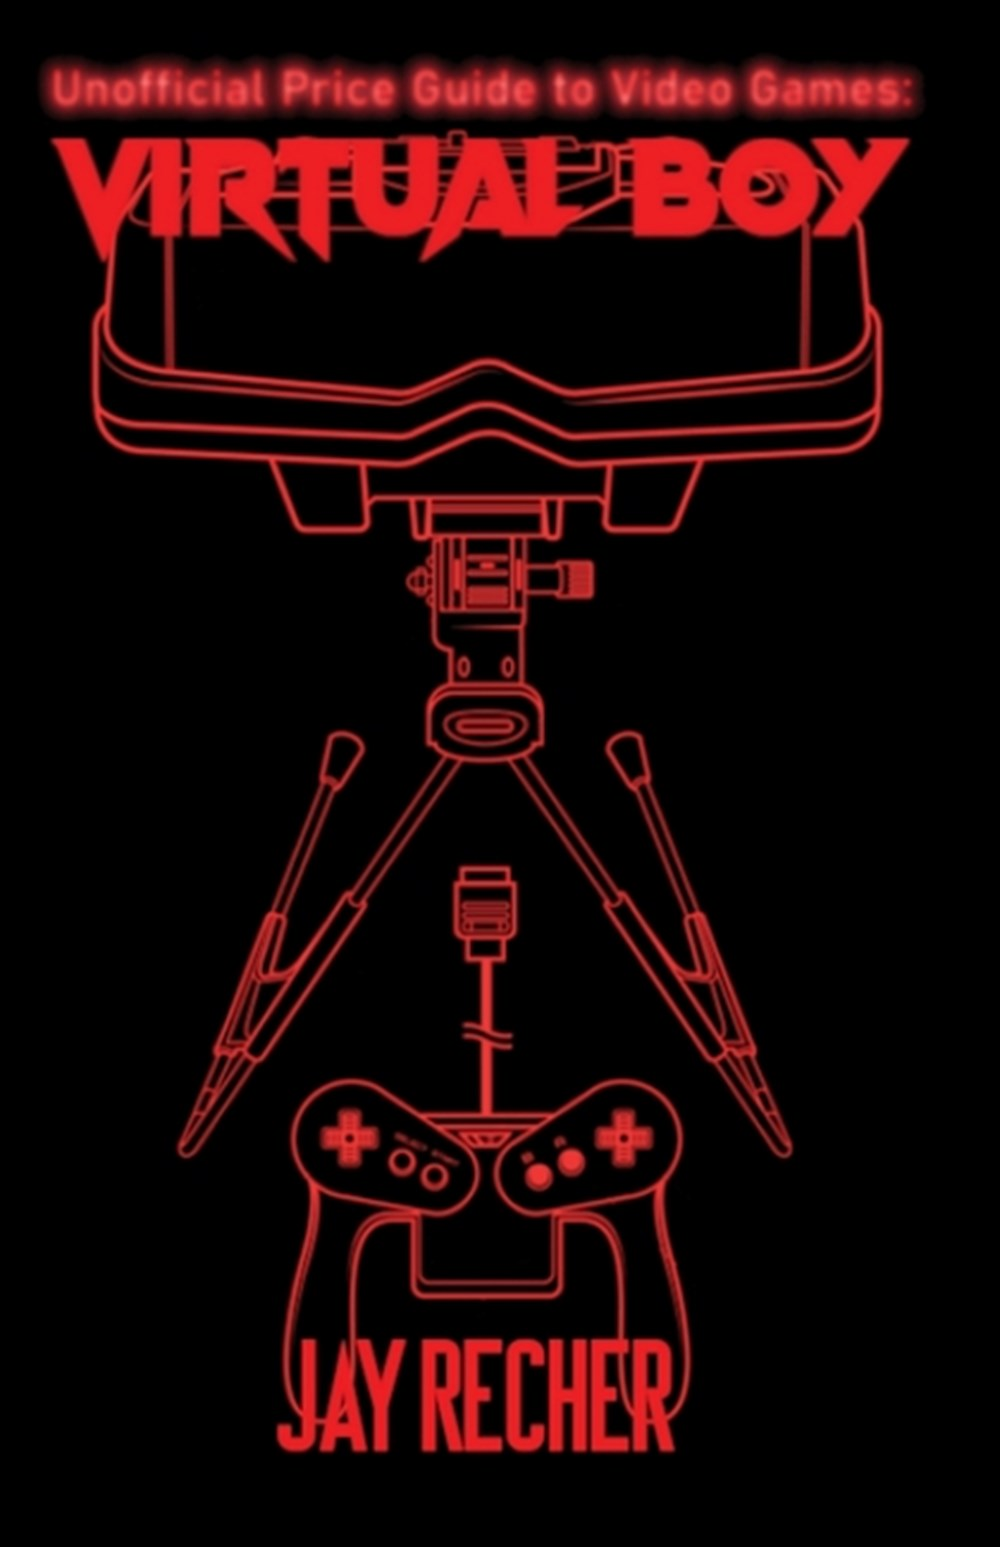 Unofficial Price Guide to Video Games Virtual Boy